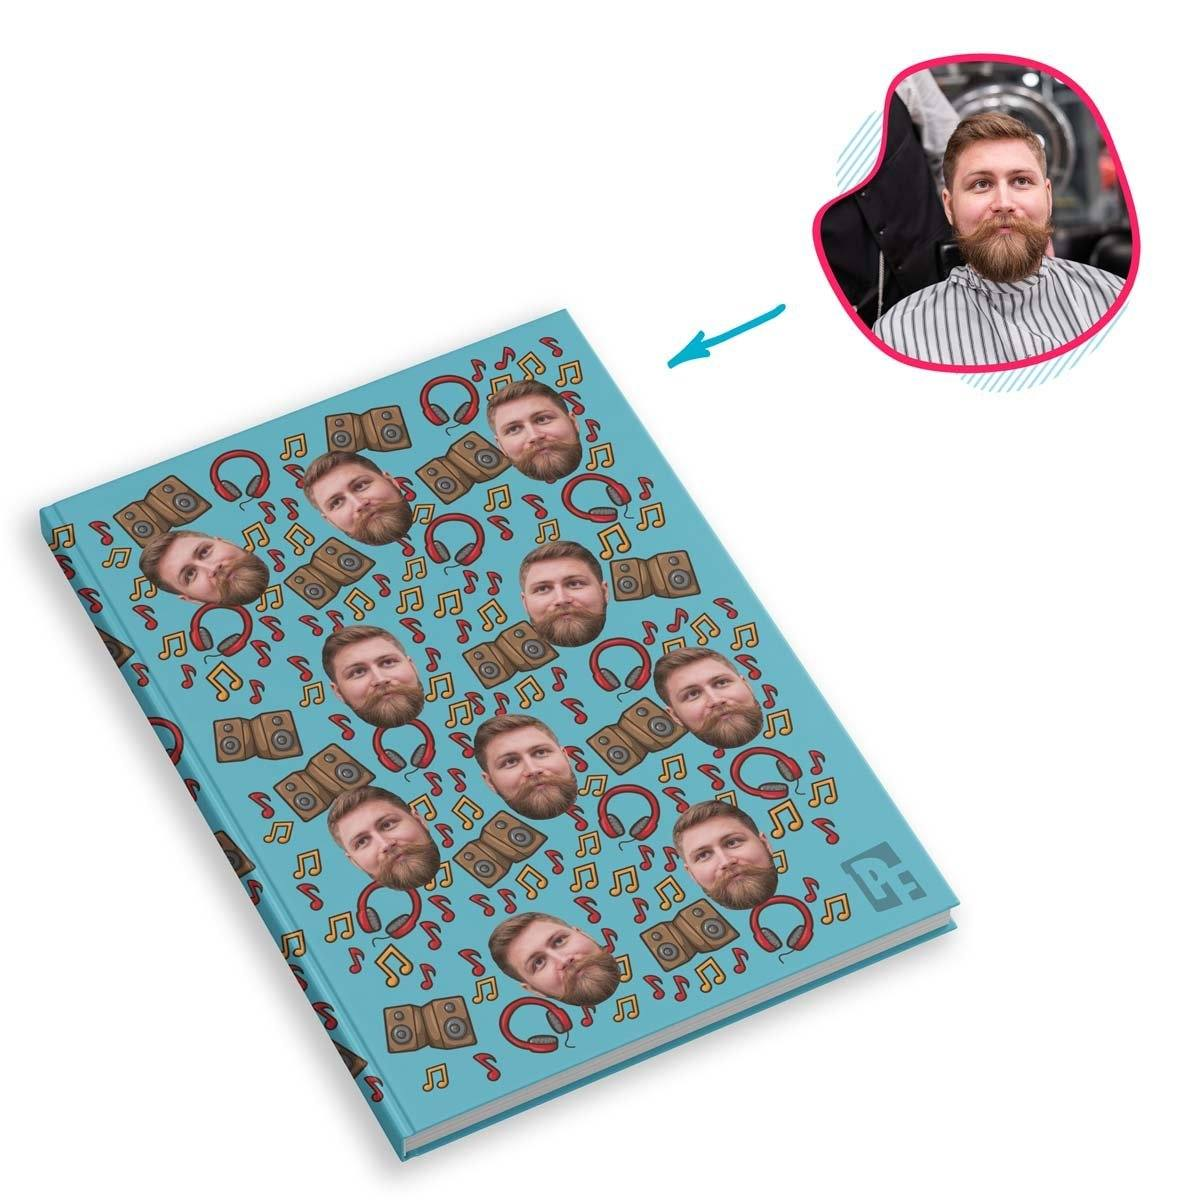 blue Music Notebook personalized with photo of face printed on them